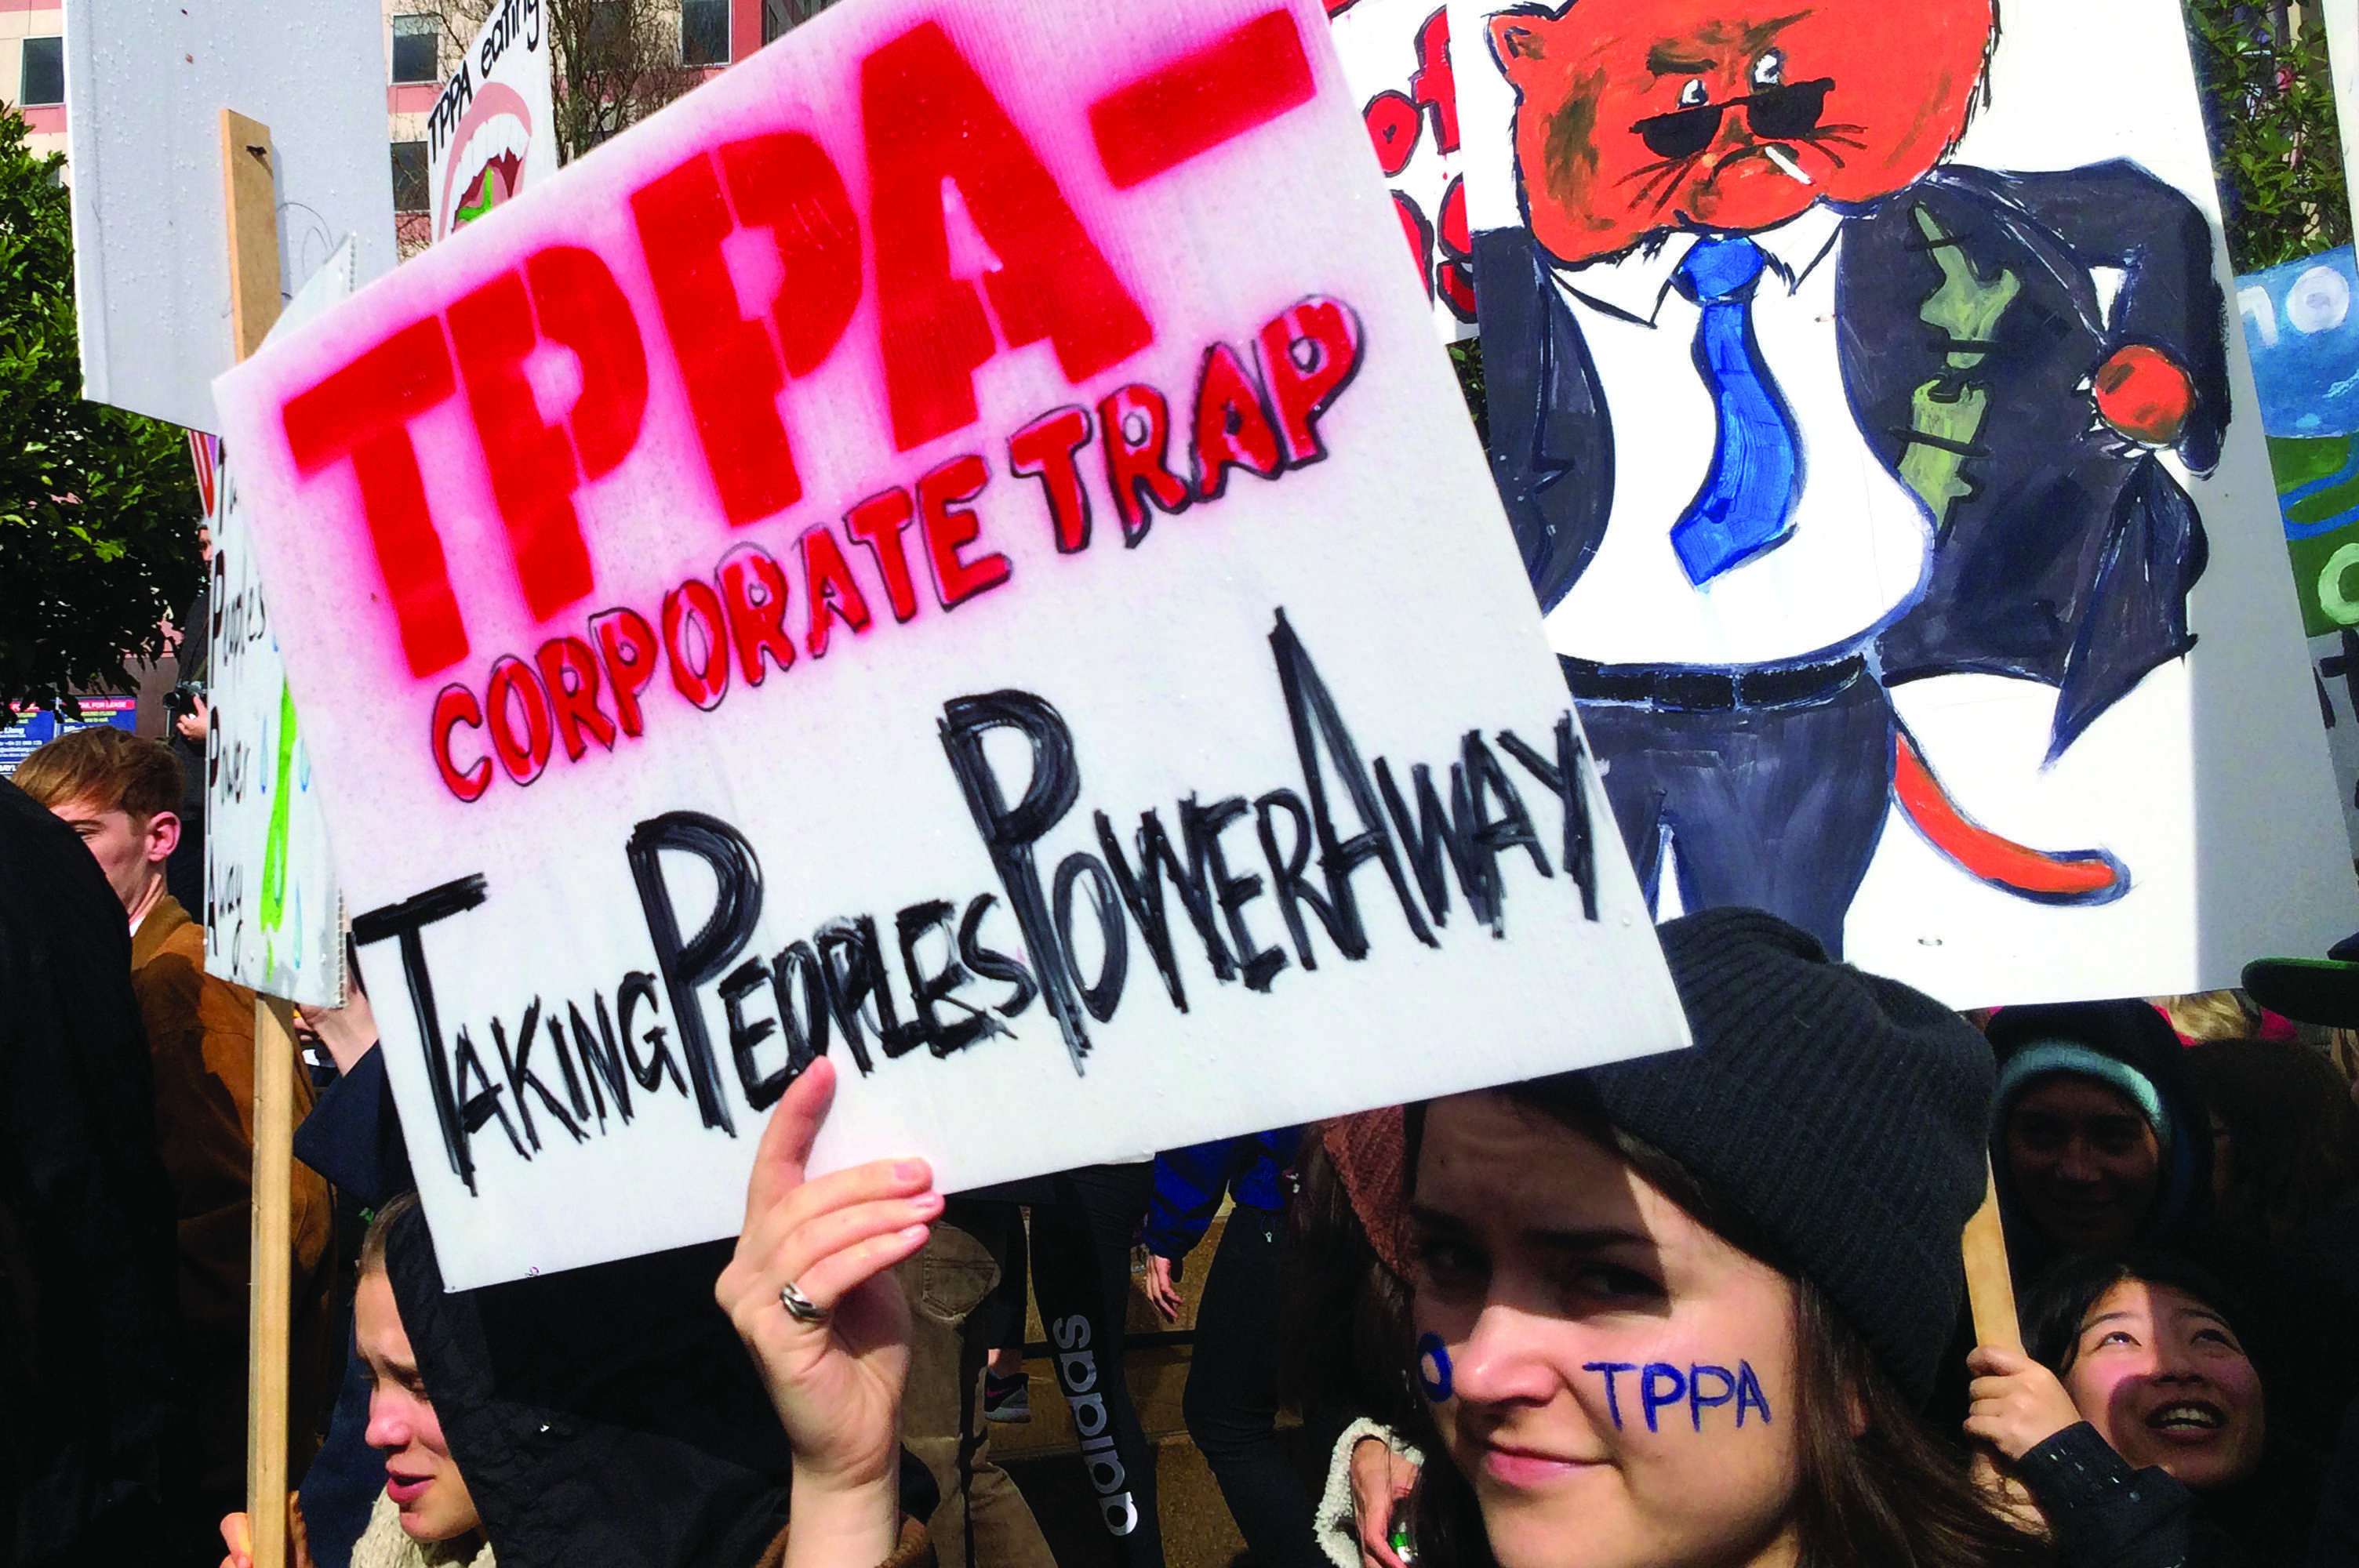 The TPP trade deal has been divisive among politicians and the public alike